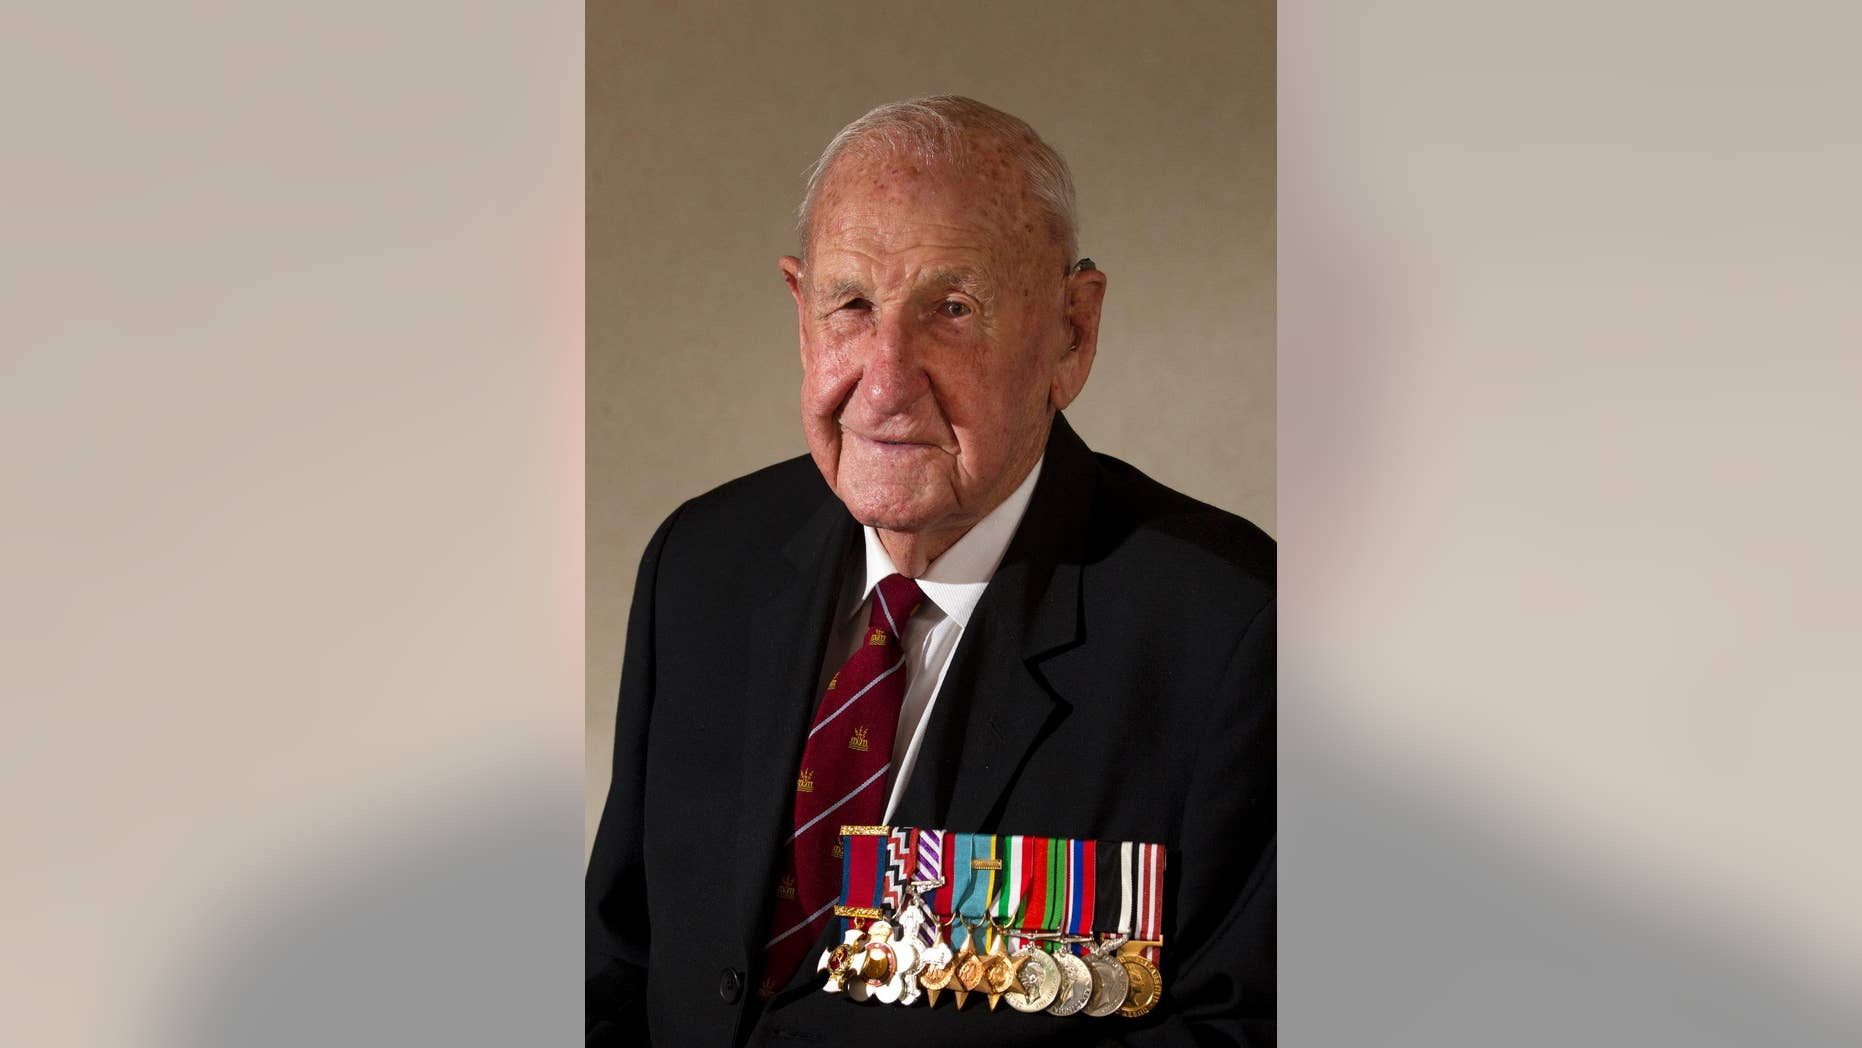 "In this March 3, 2015, photo, veteran Les Munro poses for a photo at his home in Tauranga, New Zealand. Munro, 96, the last surviving pilot from the specialized World War II ""Dambuster"" mission targeting German infrastructure died Tuesday, Aug. 4, 2015. (Alan Gibson/New Zealand Herald via AP) NEW ZEALAND OUT, AUSTRALIA OUT"